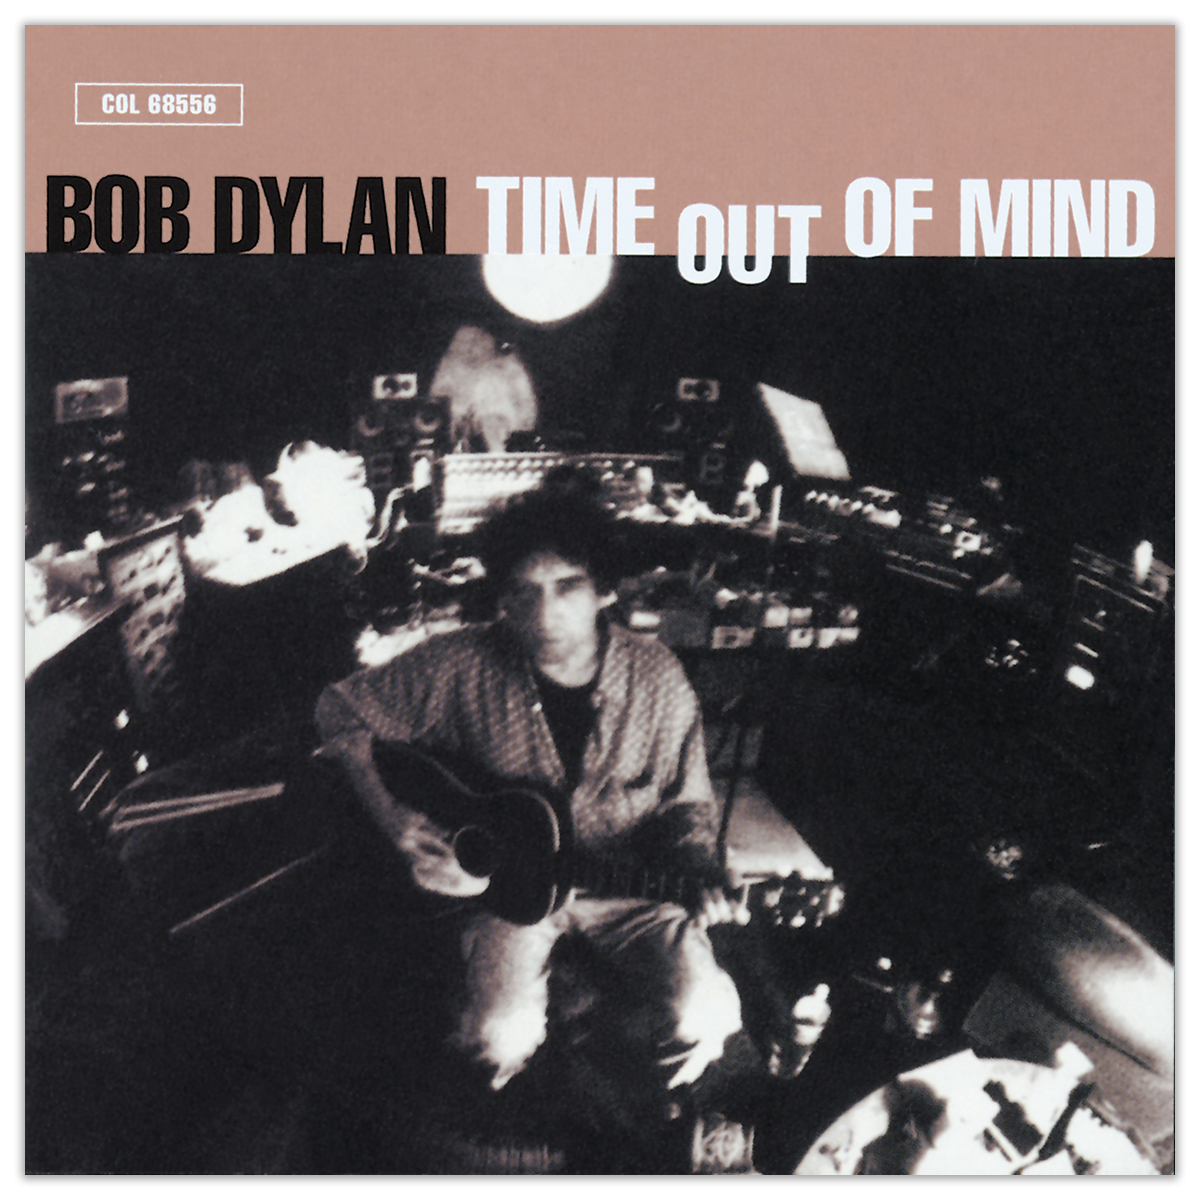 Bob Dylan - Time Out of Mind 20th Anniversary LP